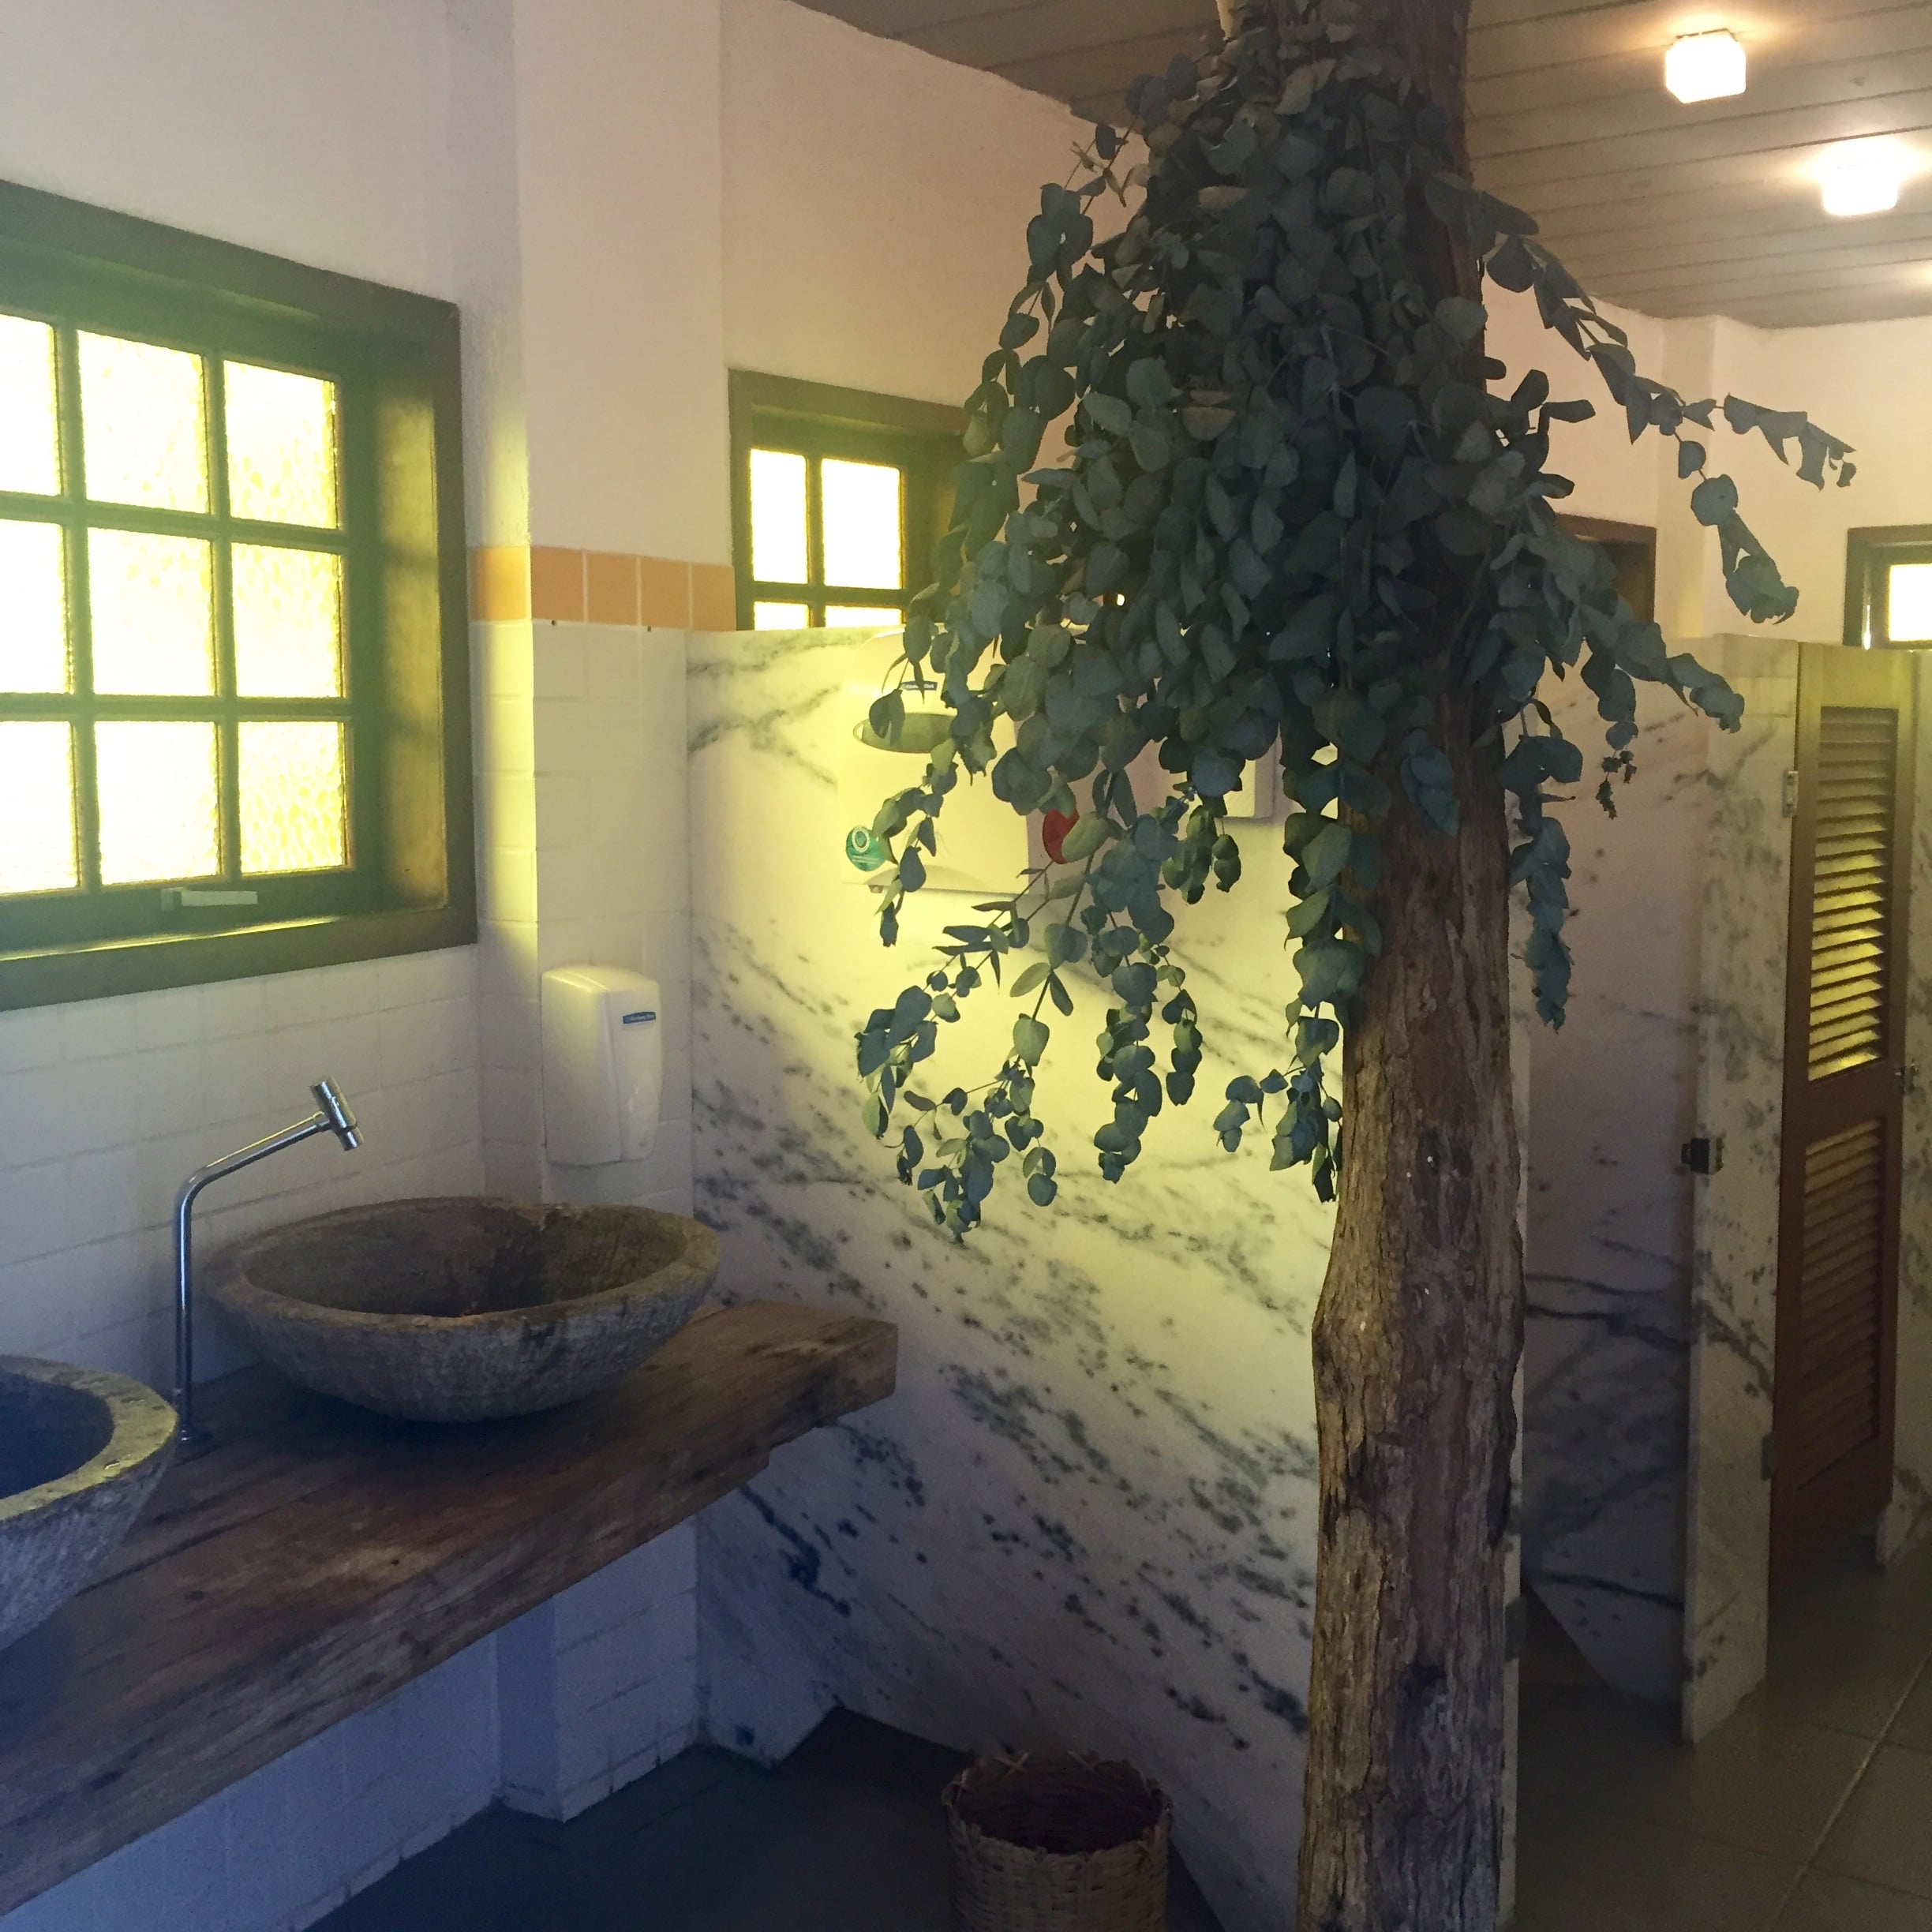 Even the bathroom had a tree growing  in it!